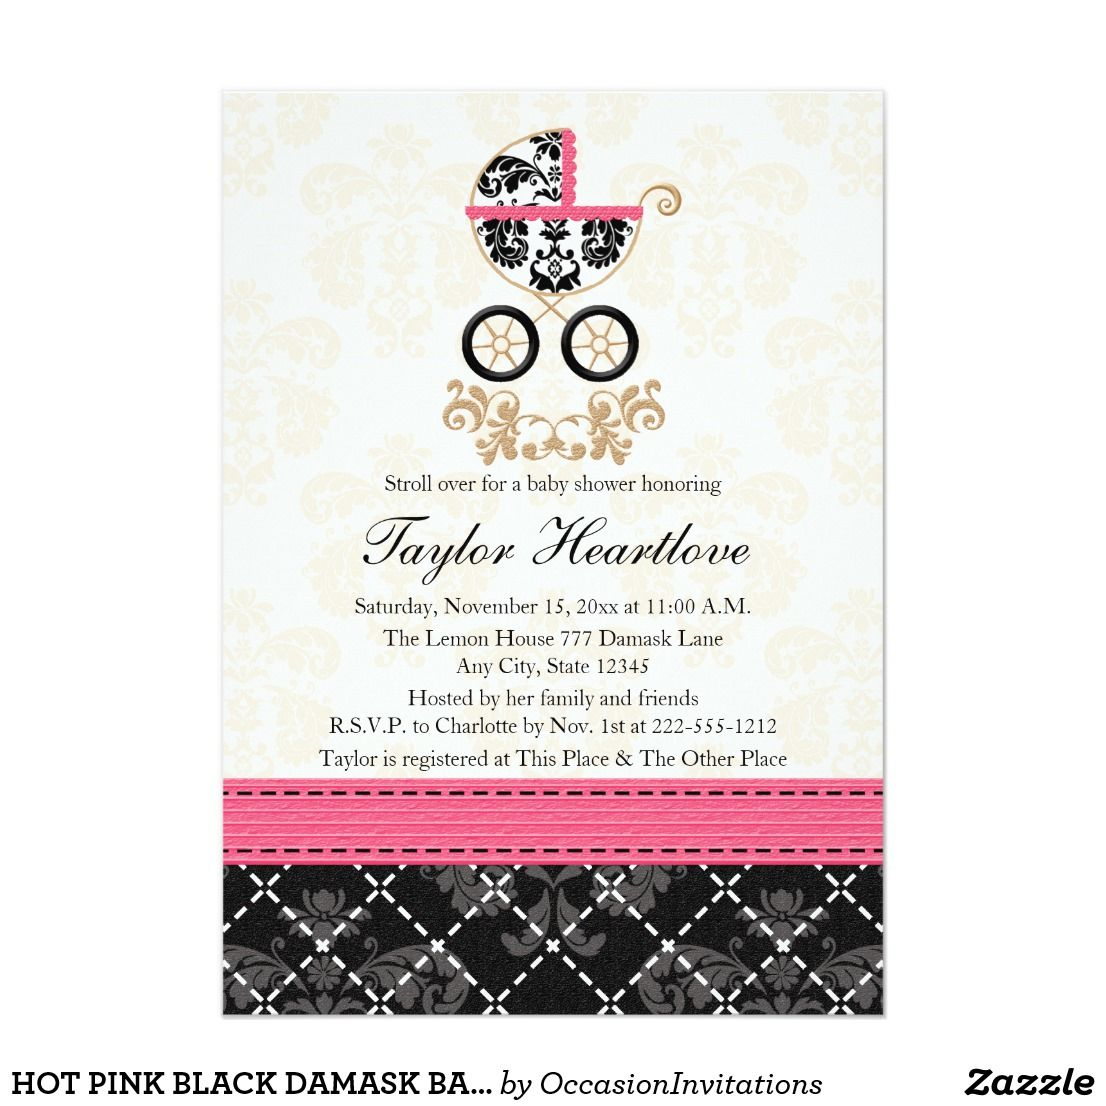 Hot pink black damask baby carriage baby shower card | Shower ...